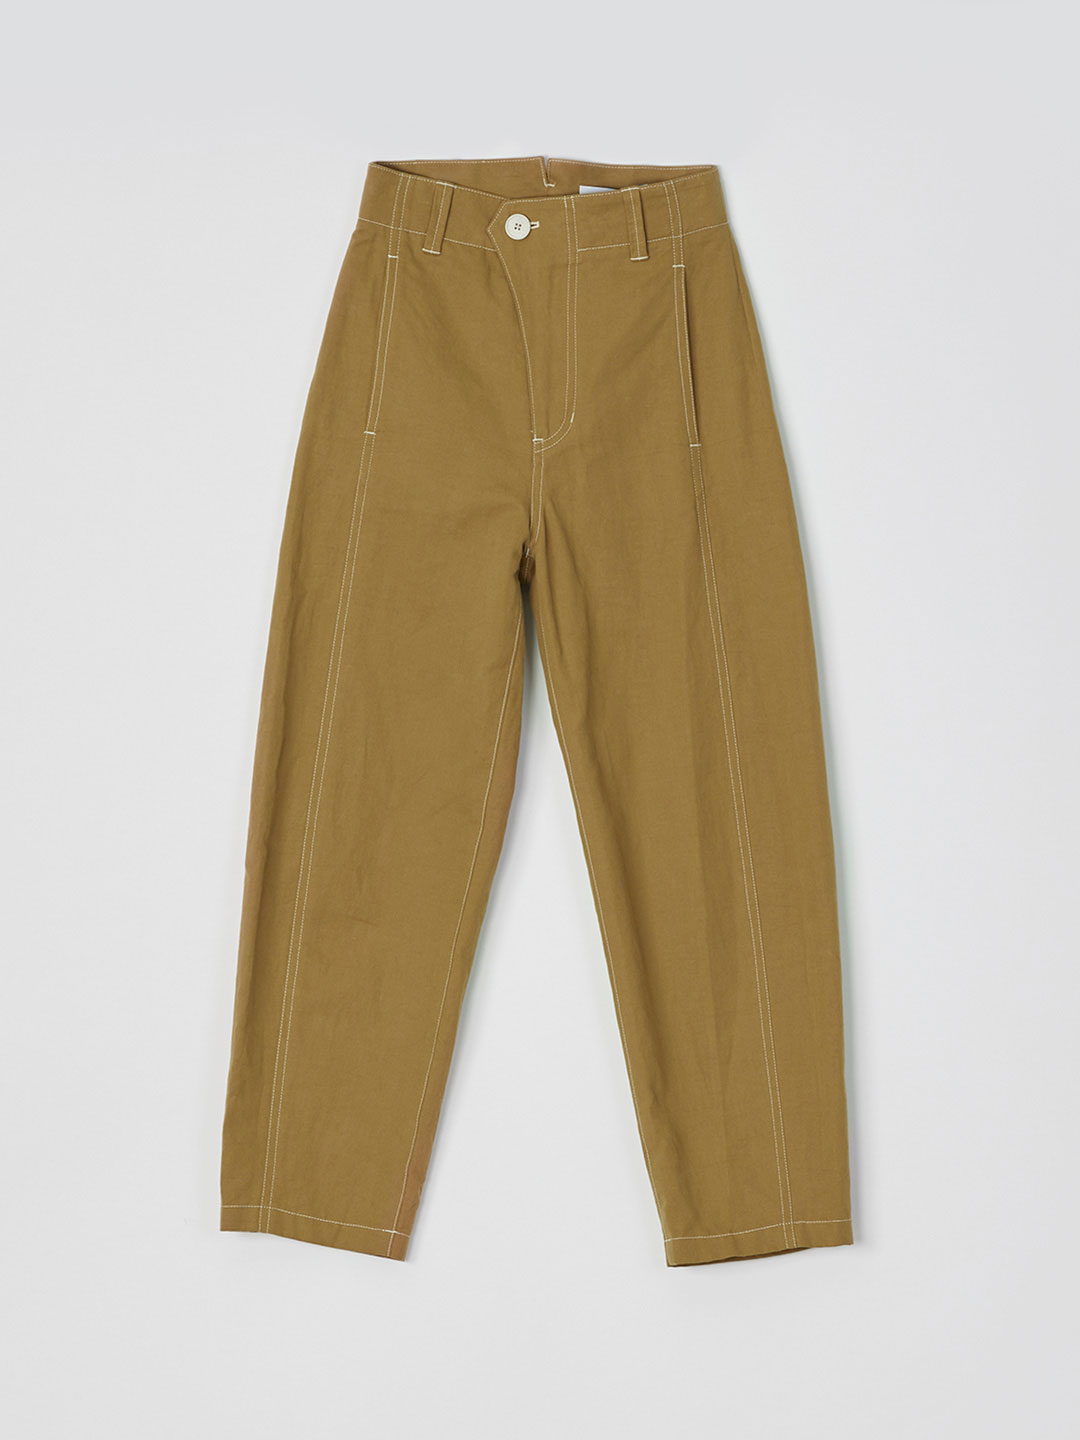 Cocoon Pants  - Camel